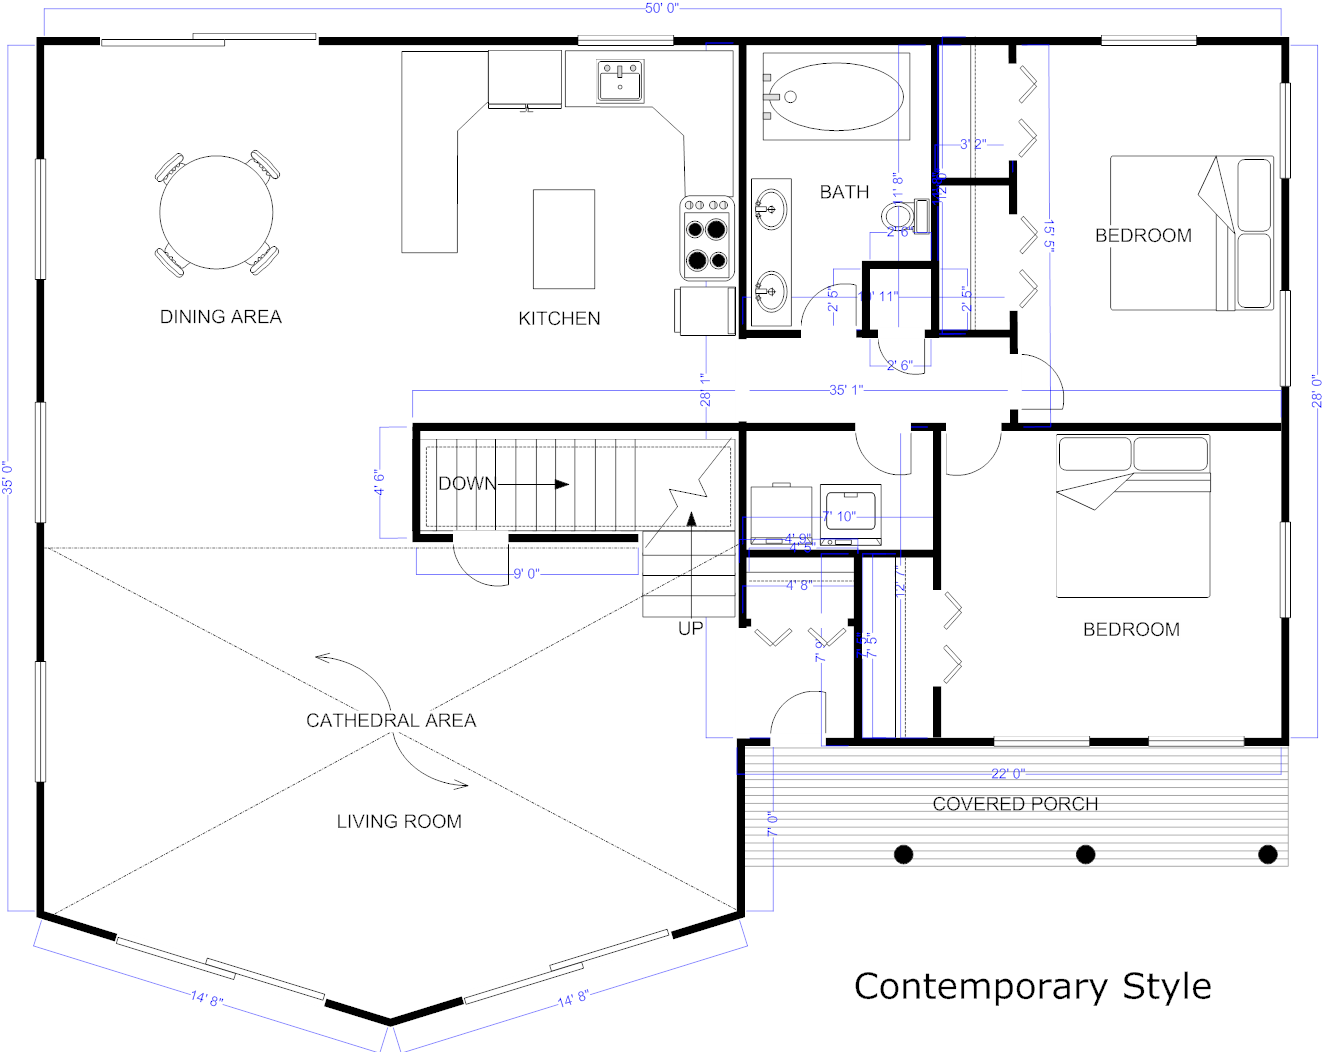 Floor Plan Symbol For Sink in addition Blank Blueprint Template additionally Simple Log Cabin Floor Plans additionally Small House Plans With Garage also Millenium Falcon Interior Layout. on floor plan symbols and meanings